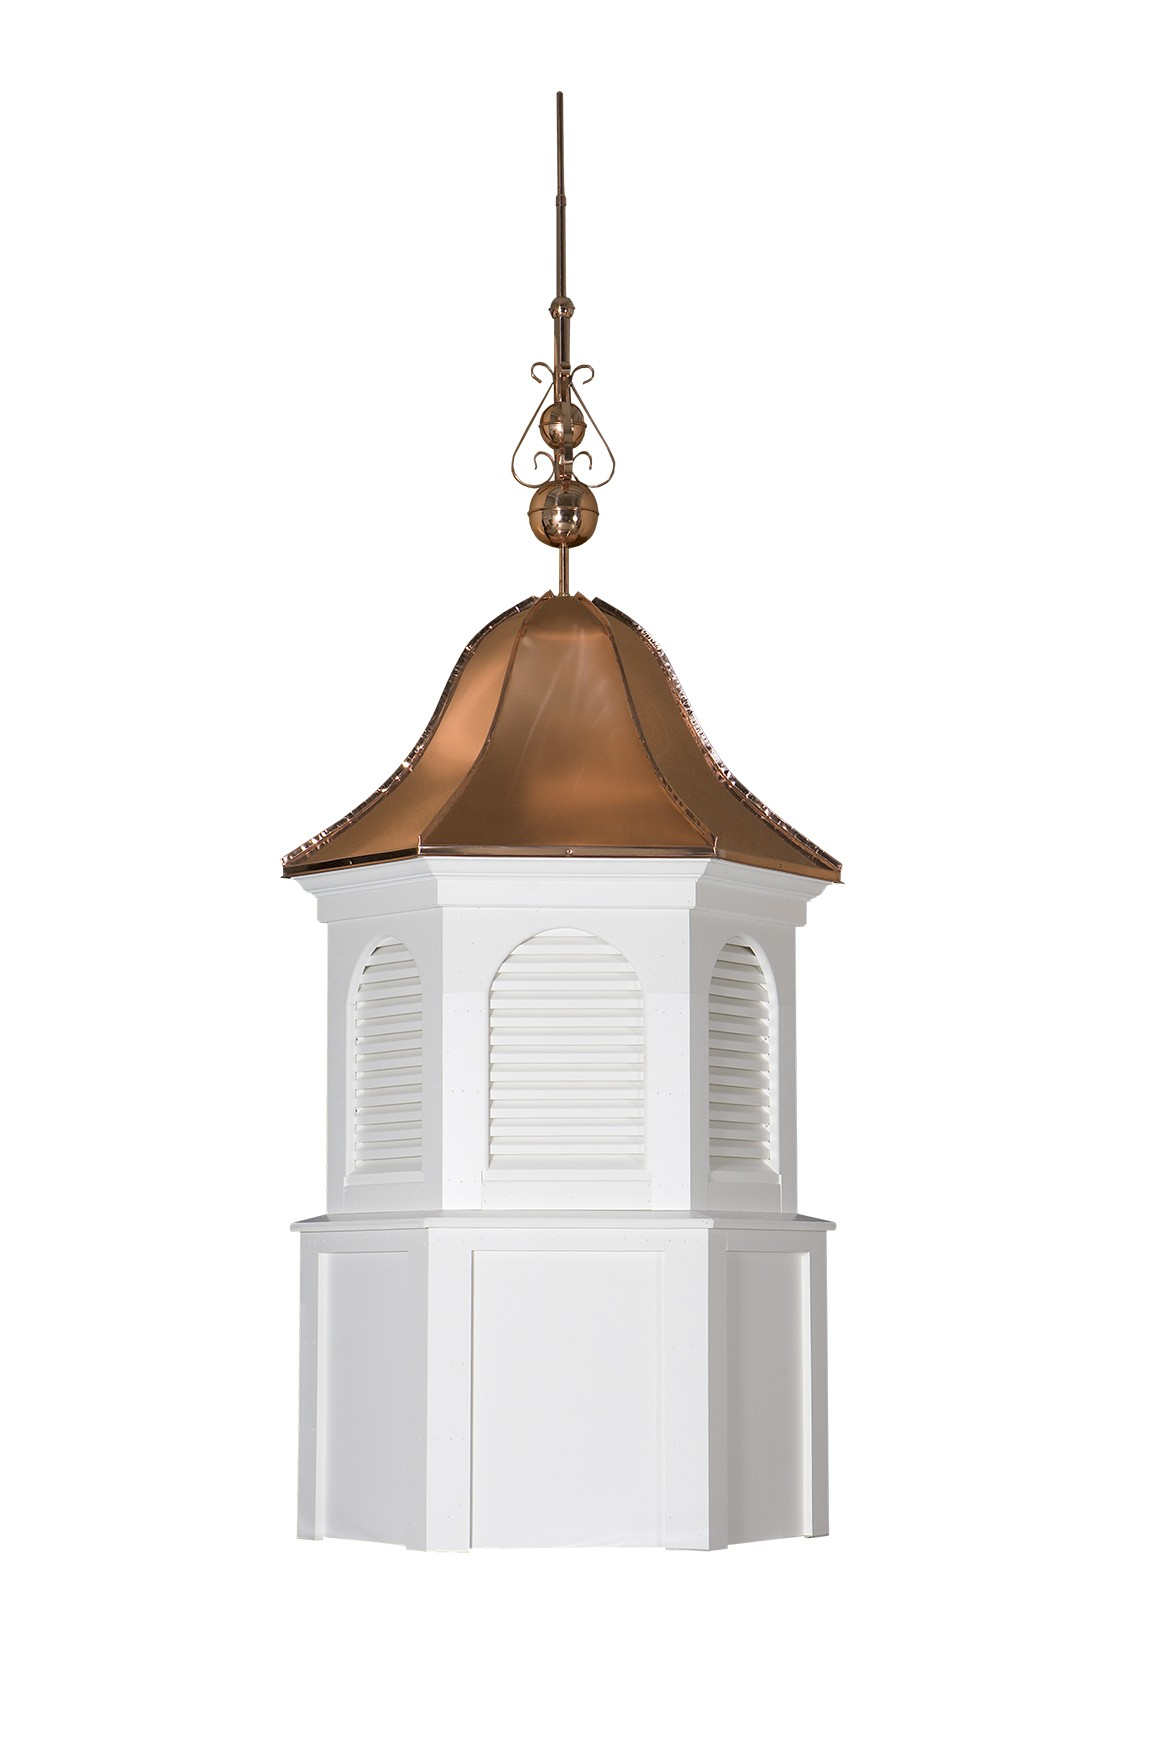 Beautiful Cupolas for Your Ornamental Structure of Roof: Decorative Cupola | Cupolas | Vinyl Cupola